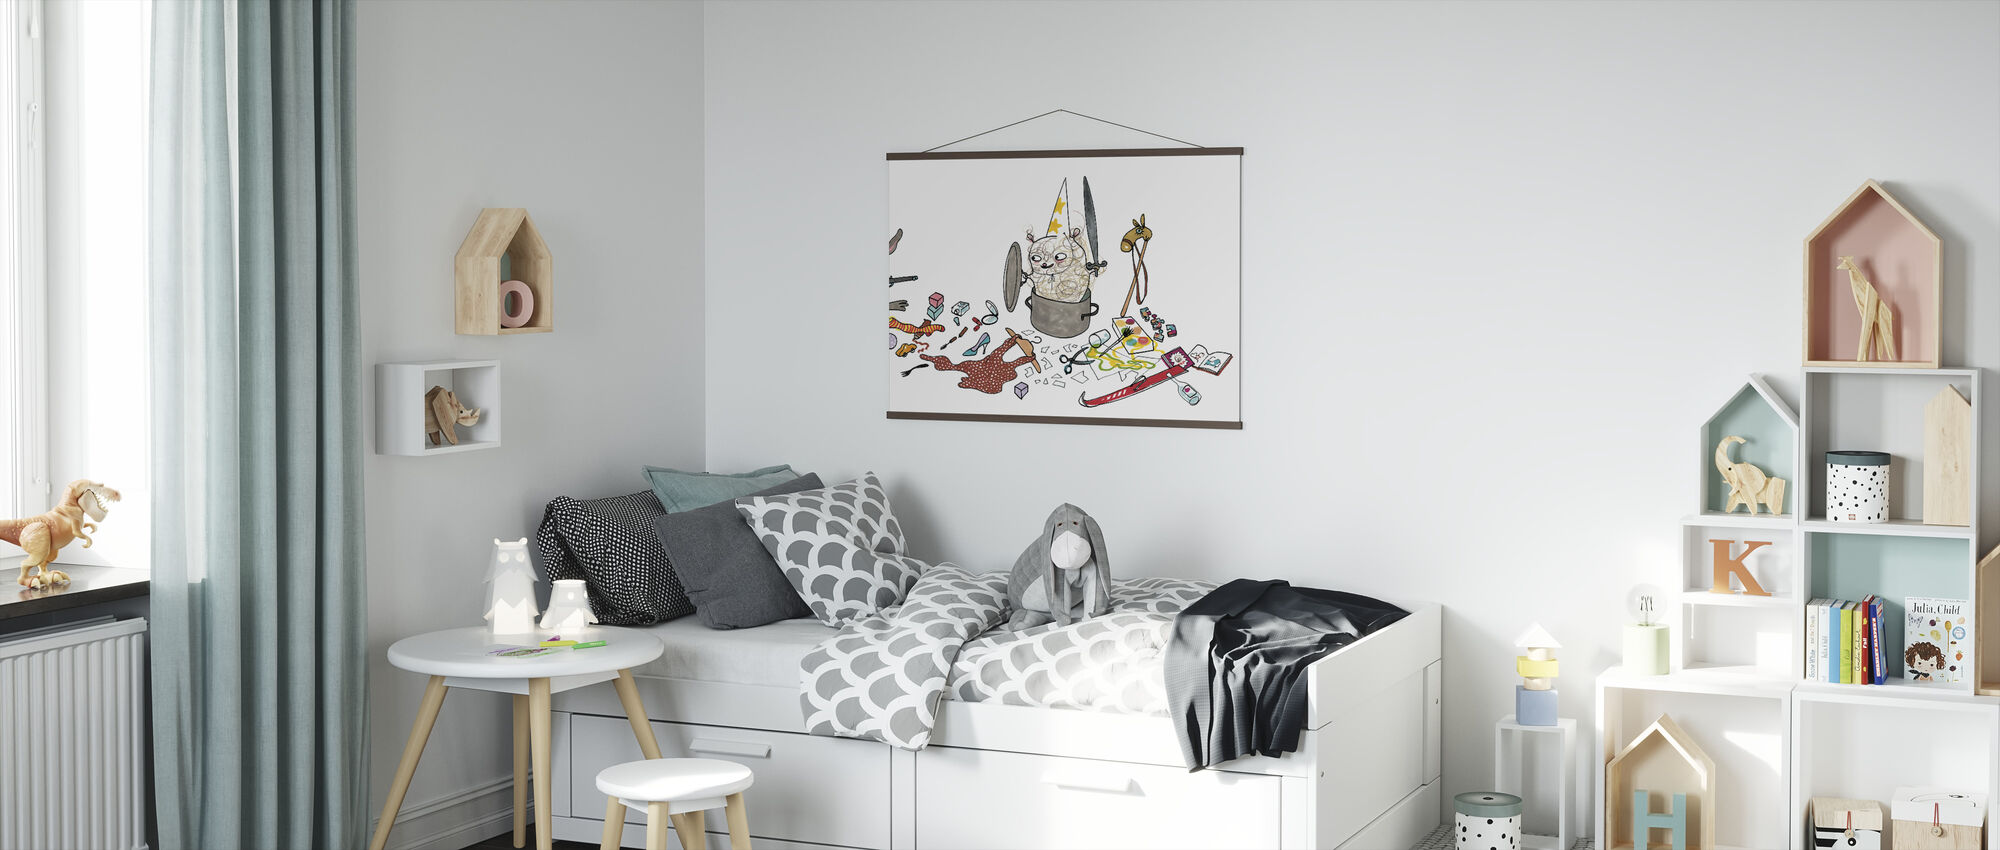 Who does not clean - Poster - Kids Room